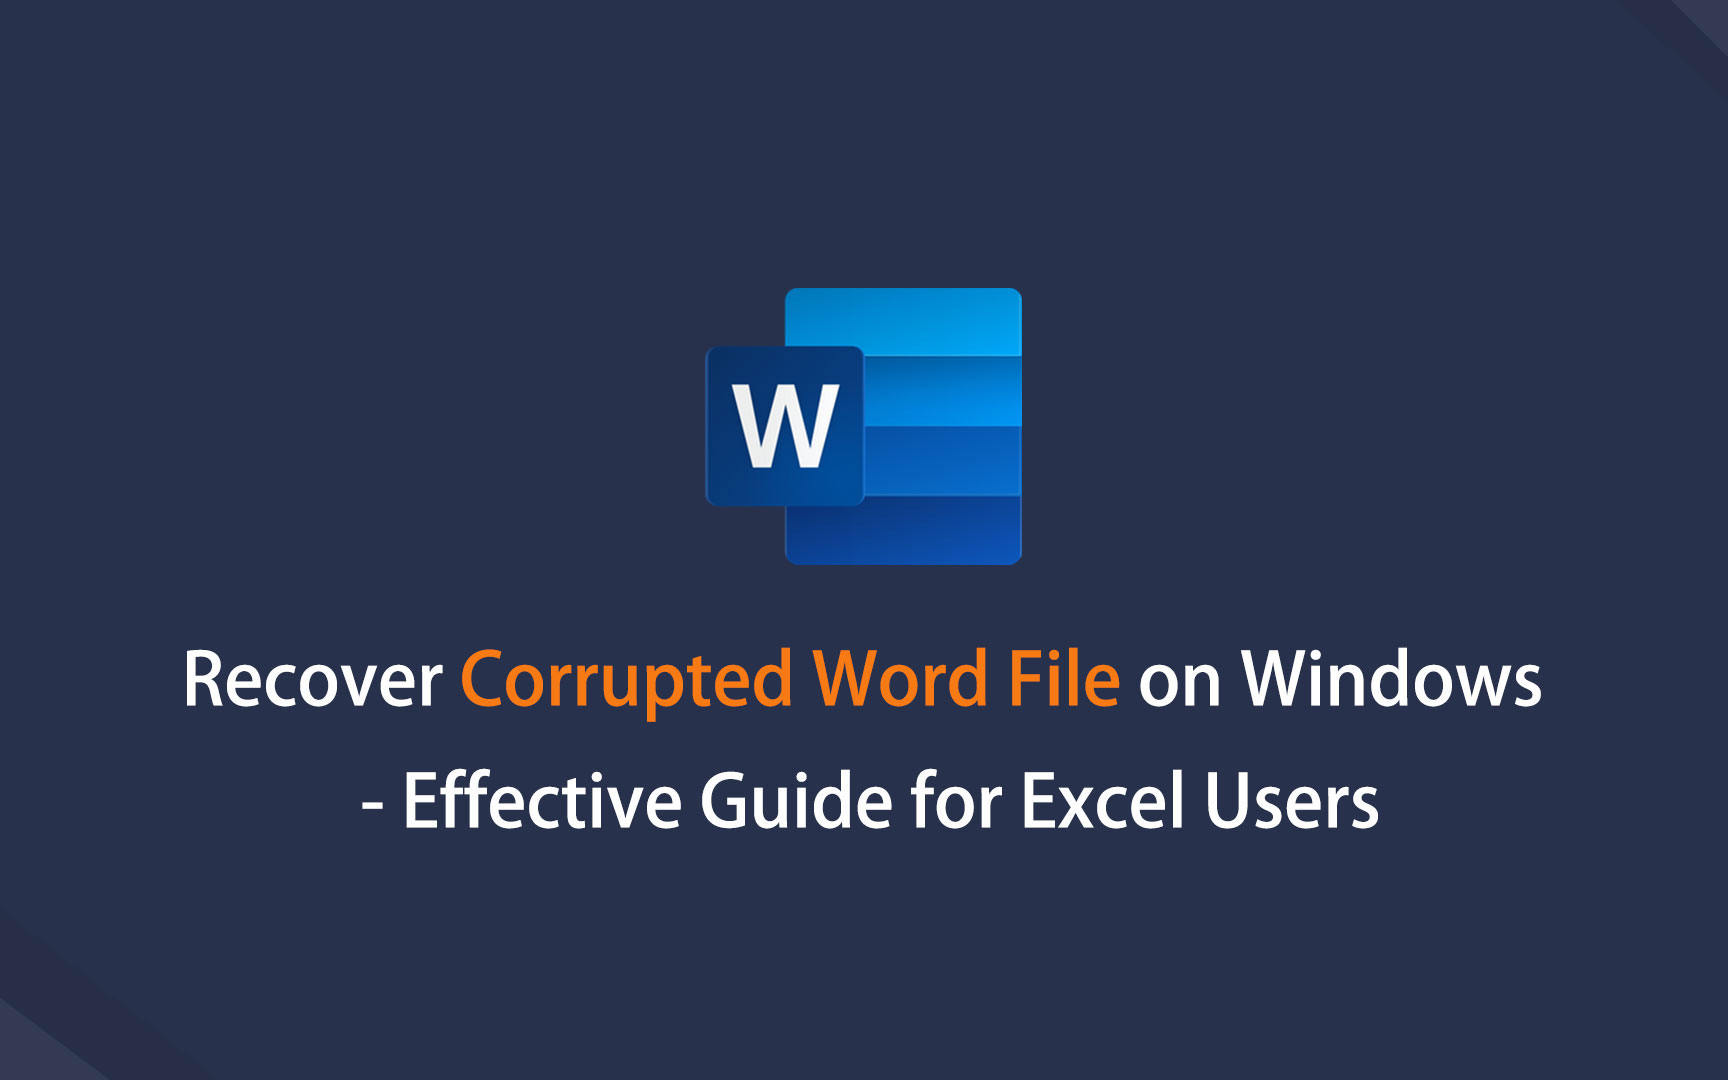 Recover Corrupted Word File on Windows